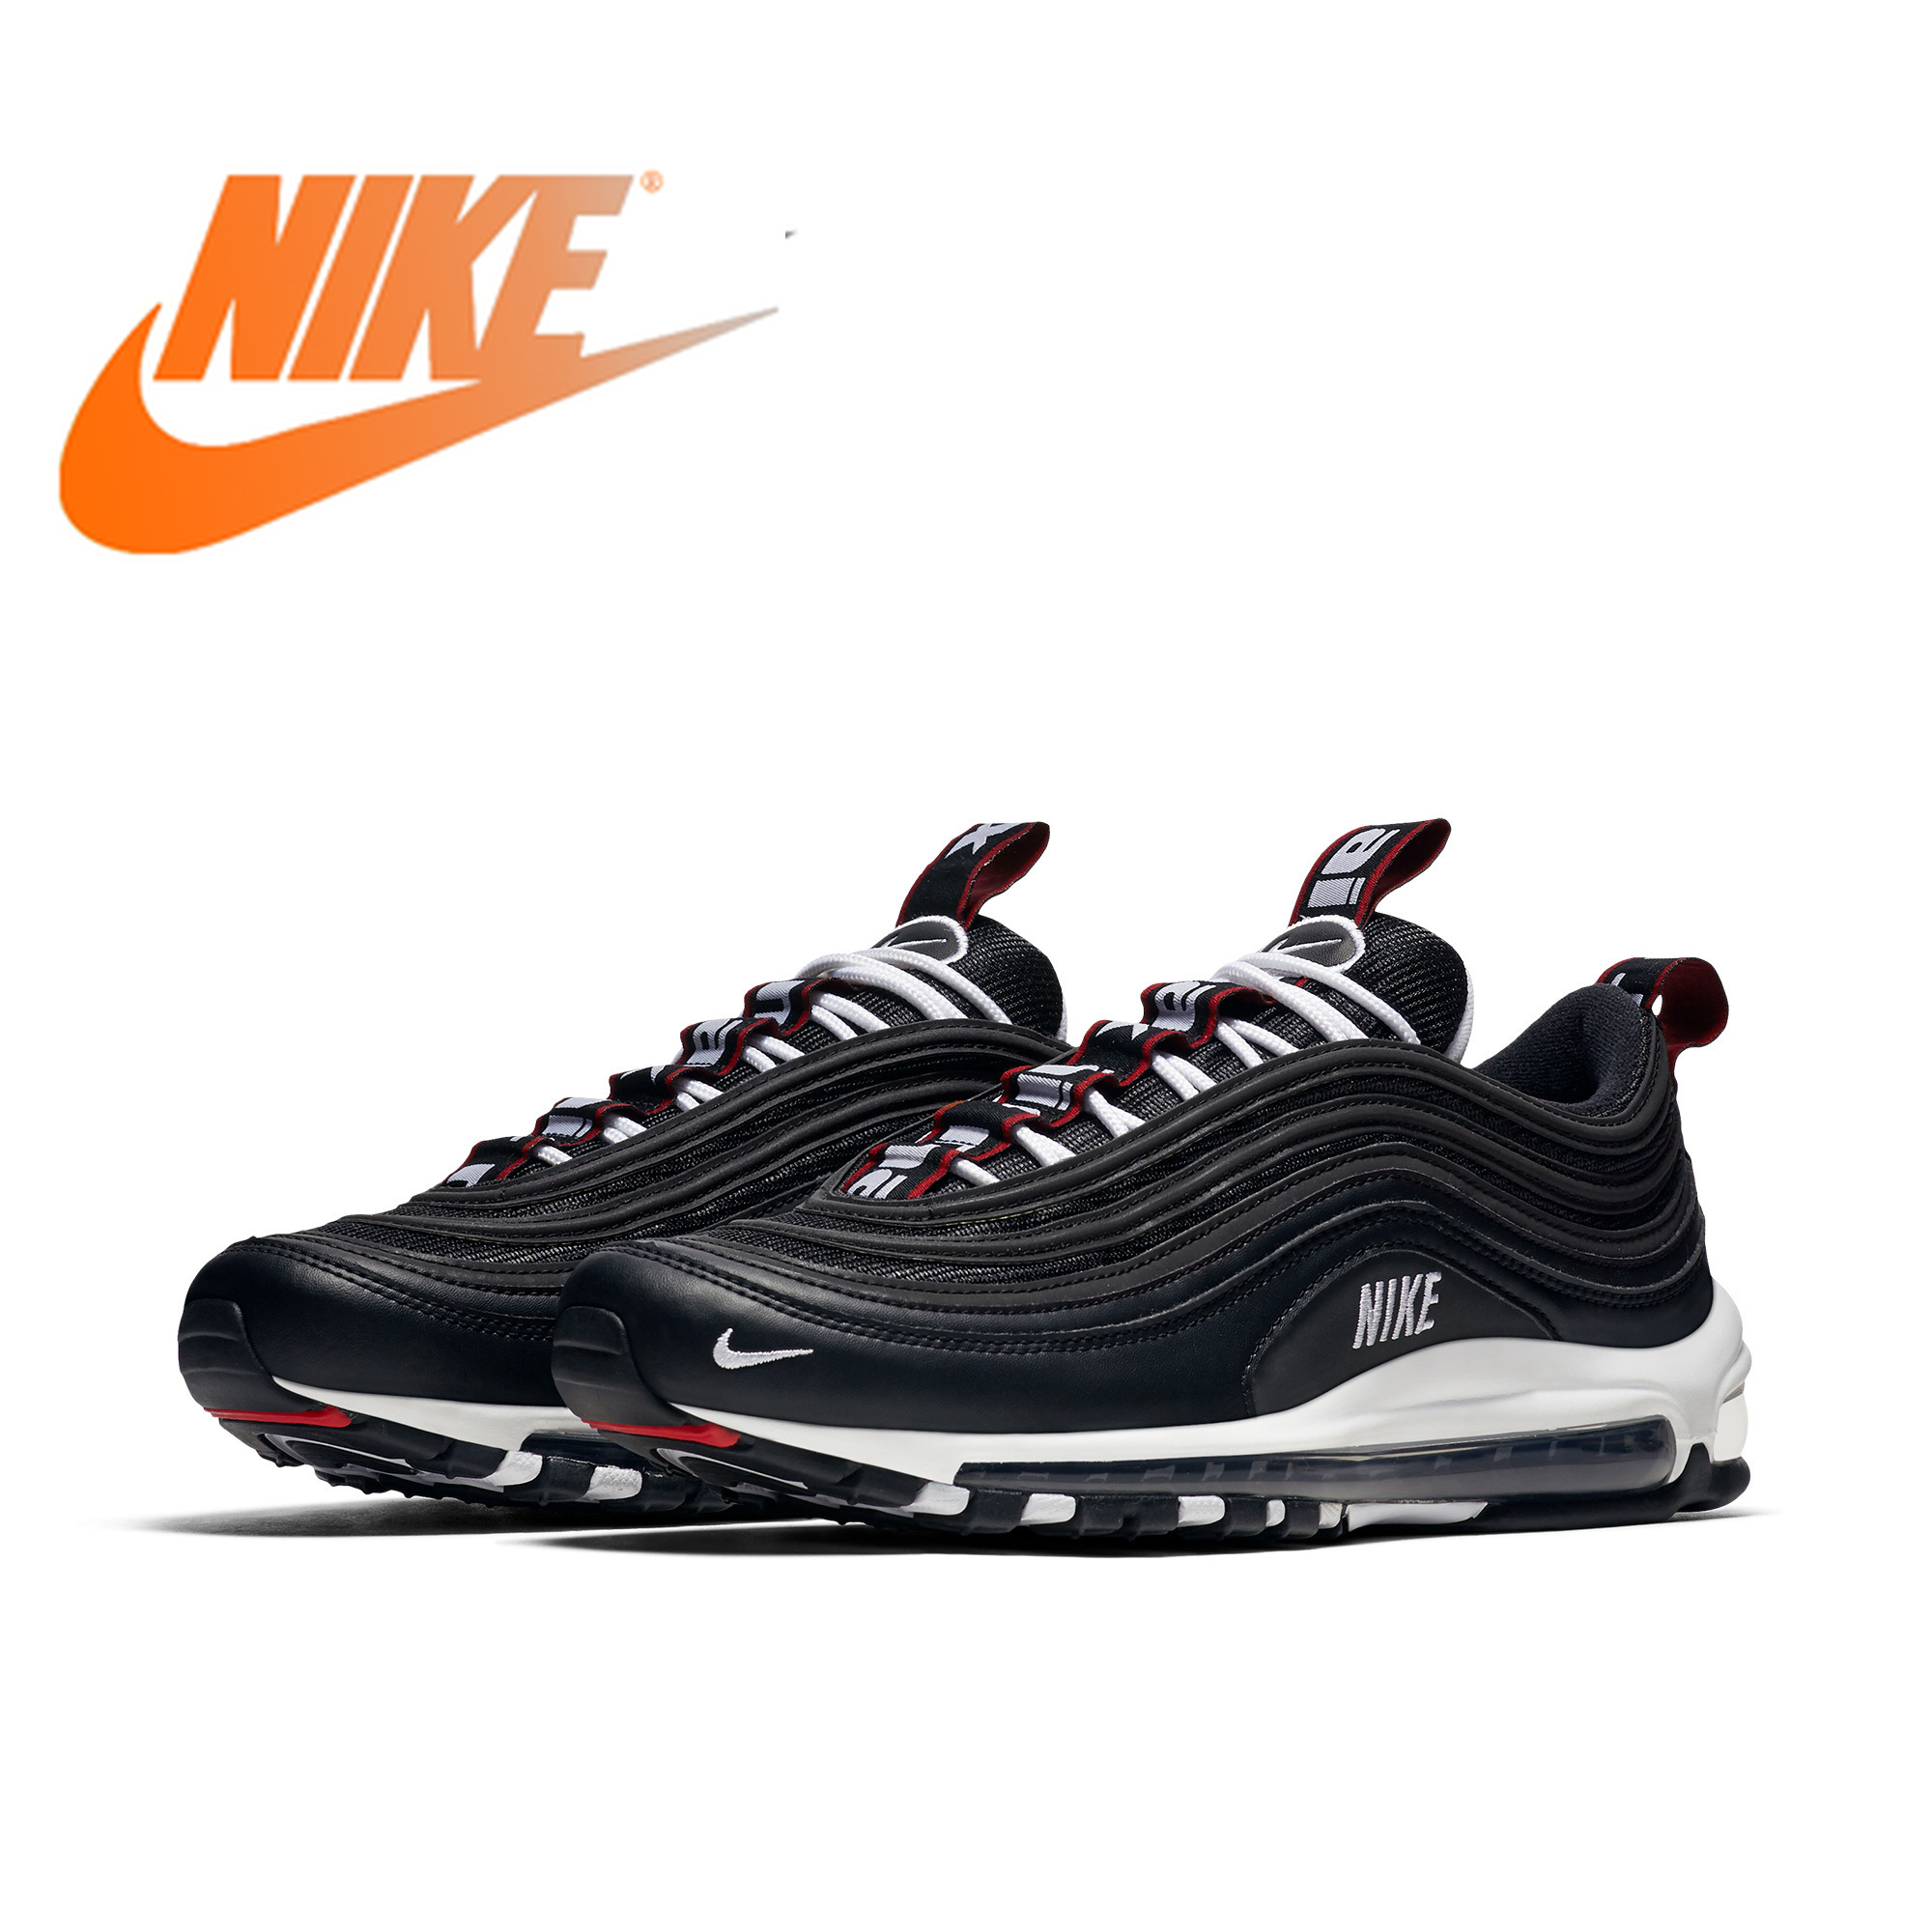 Original Authentic NIKE AIR MAX 97 PREMIUM Men's Running Shoes Trend Outdoor Sports Shoes Comfortable And Durable 312834